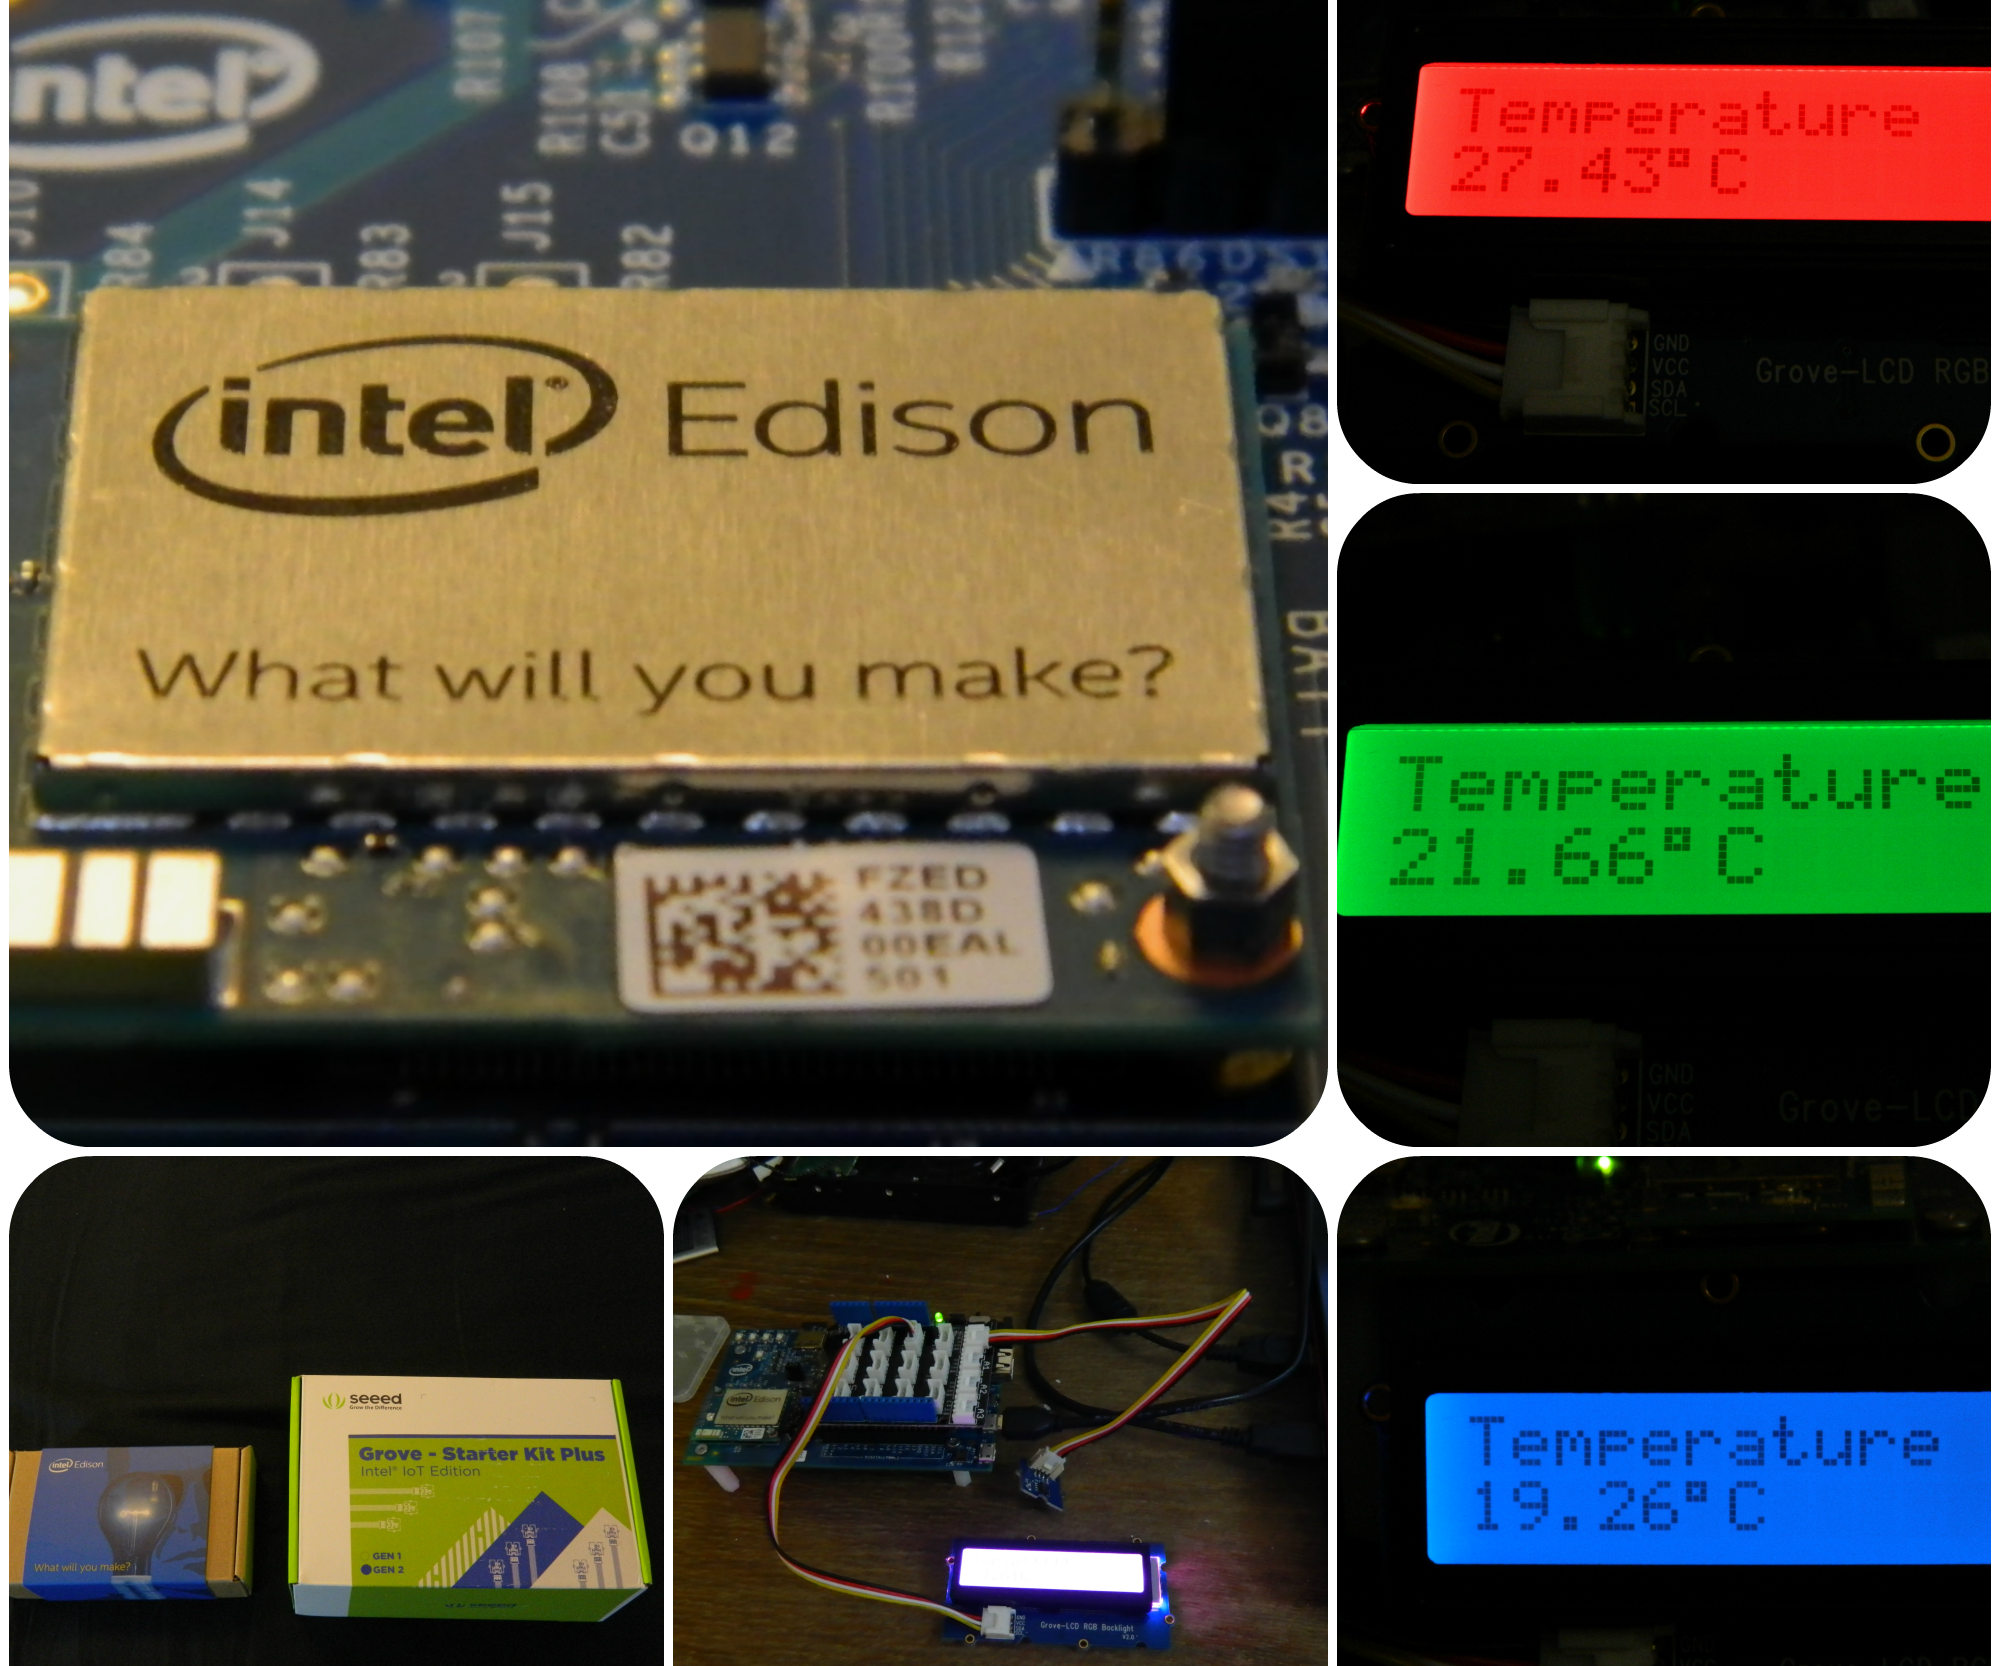 Intel Edison Temperature logger with RBG-LCD